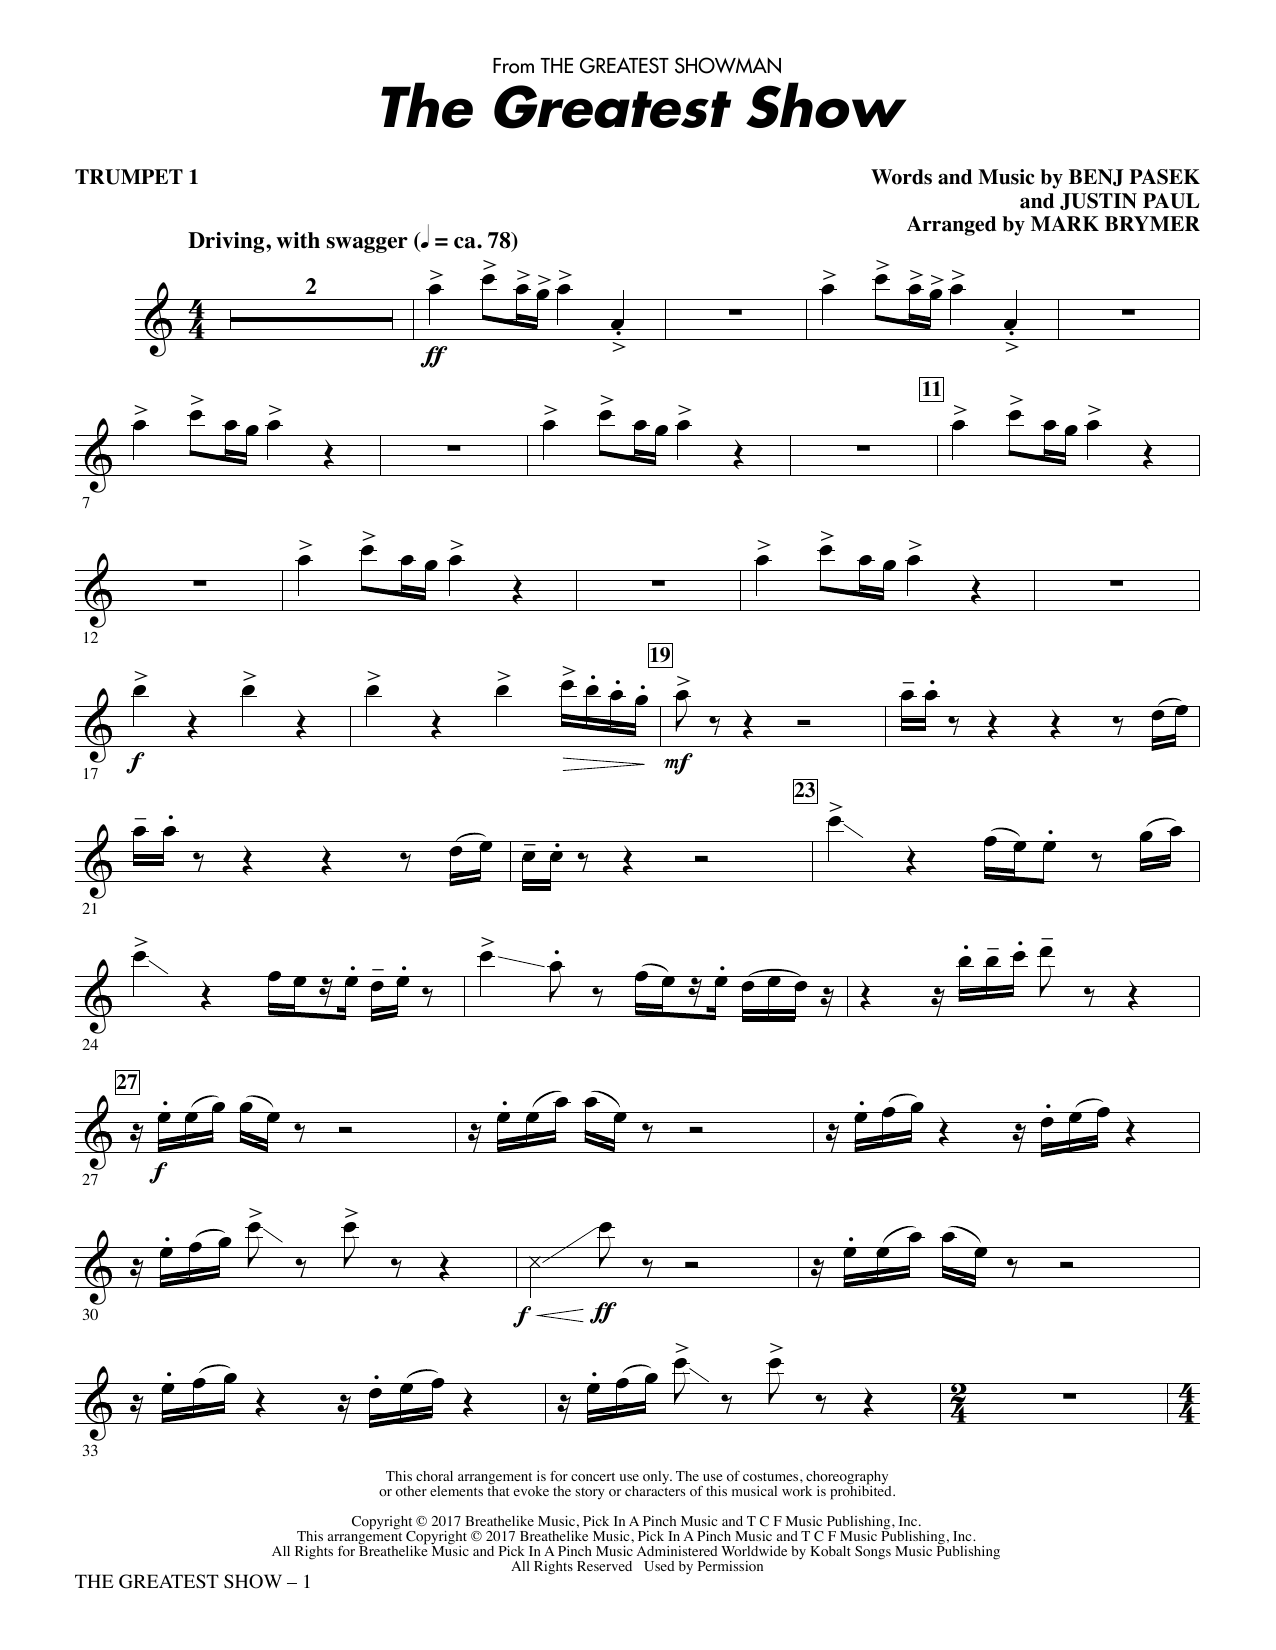 Pasek & Paul The Greatest Show - Trumpet 1 sheet music notes and chords. Download Printable PDF.